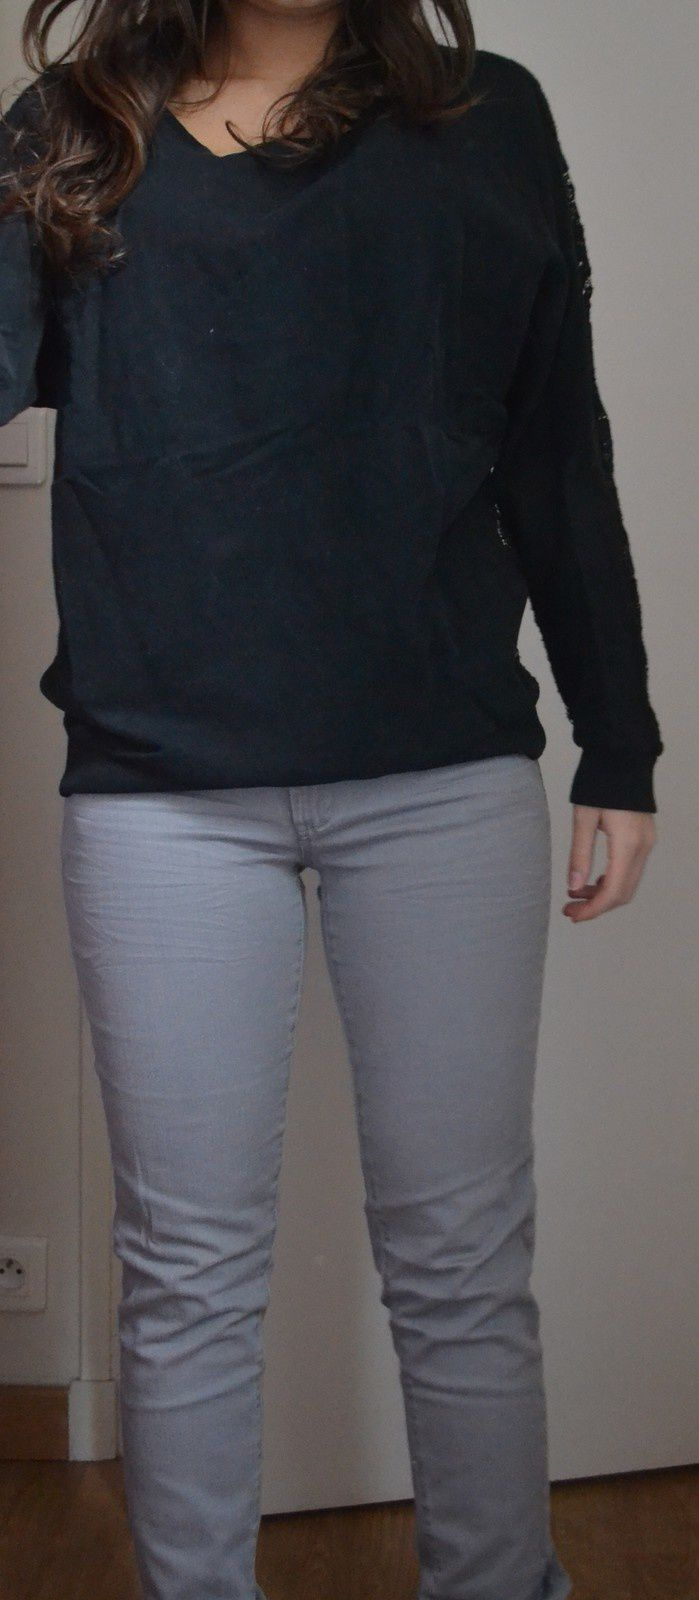 Jeans taille 36 Pimkie 8€   Pull dentelle Pimkie taille M: 15€